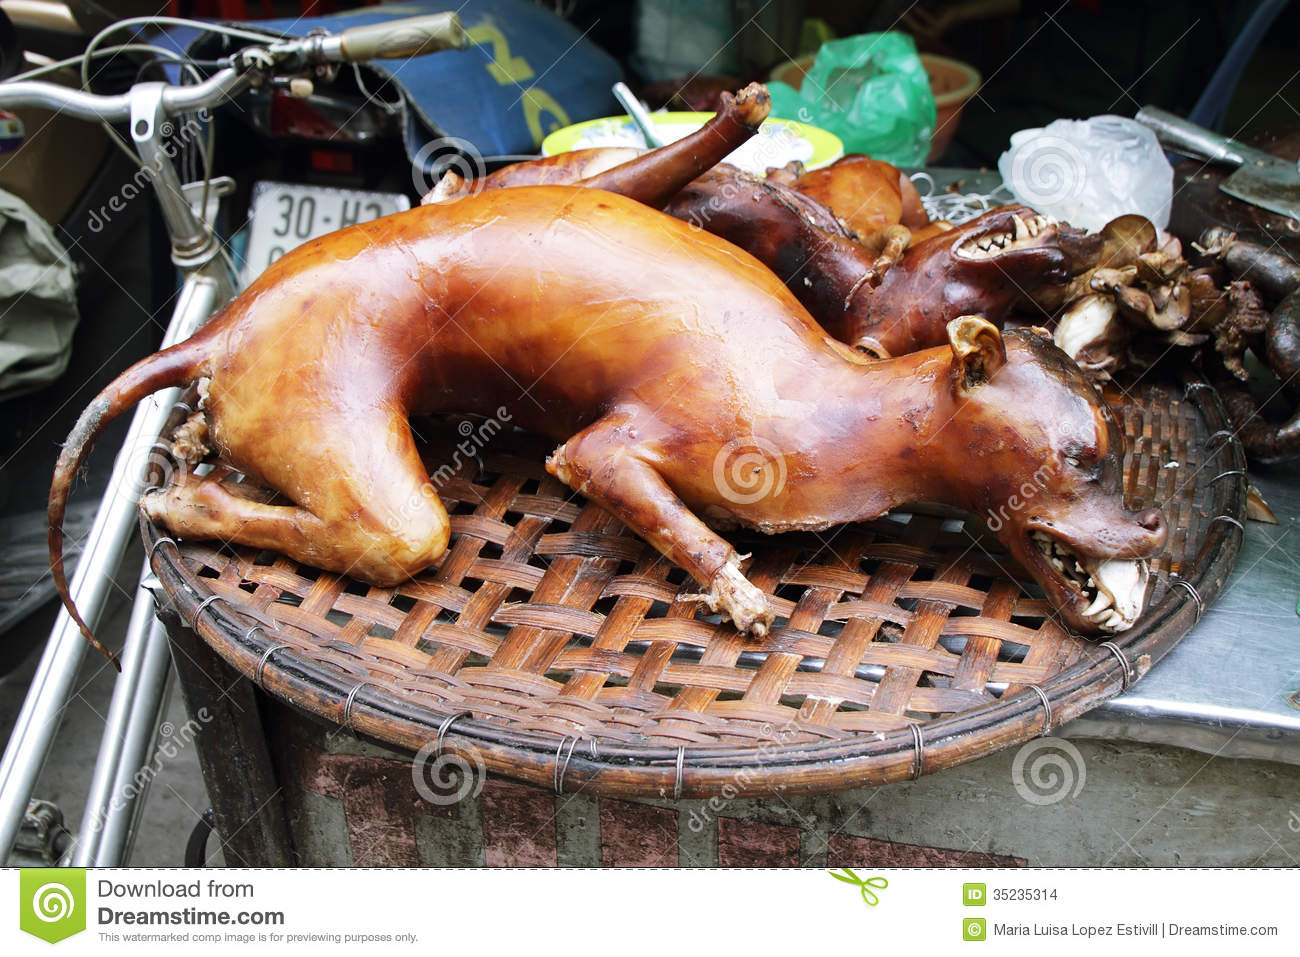 Can Dogs Eat Cooked Lamb Meat